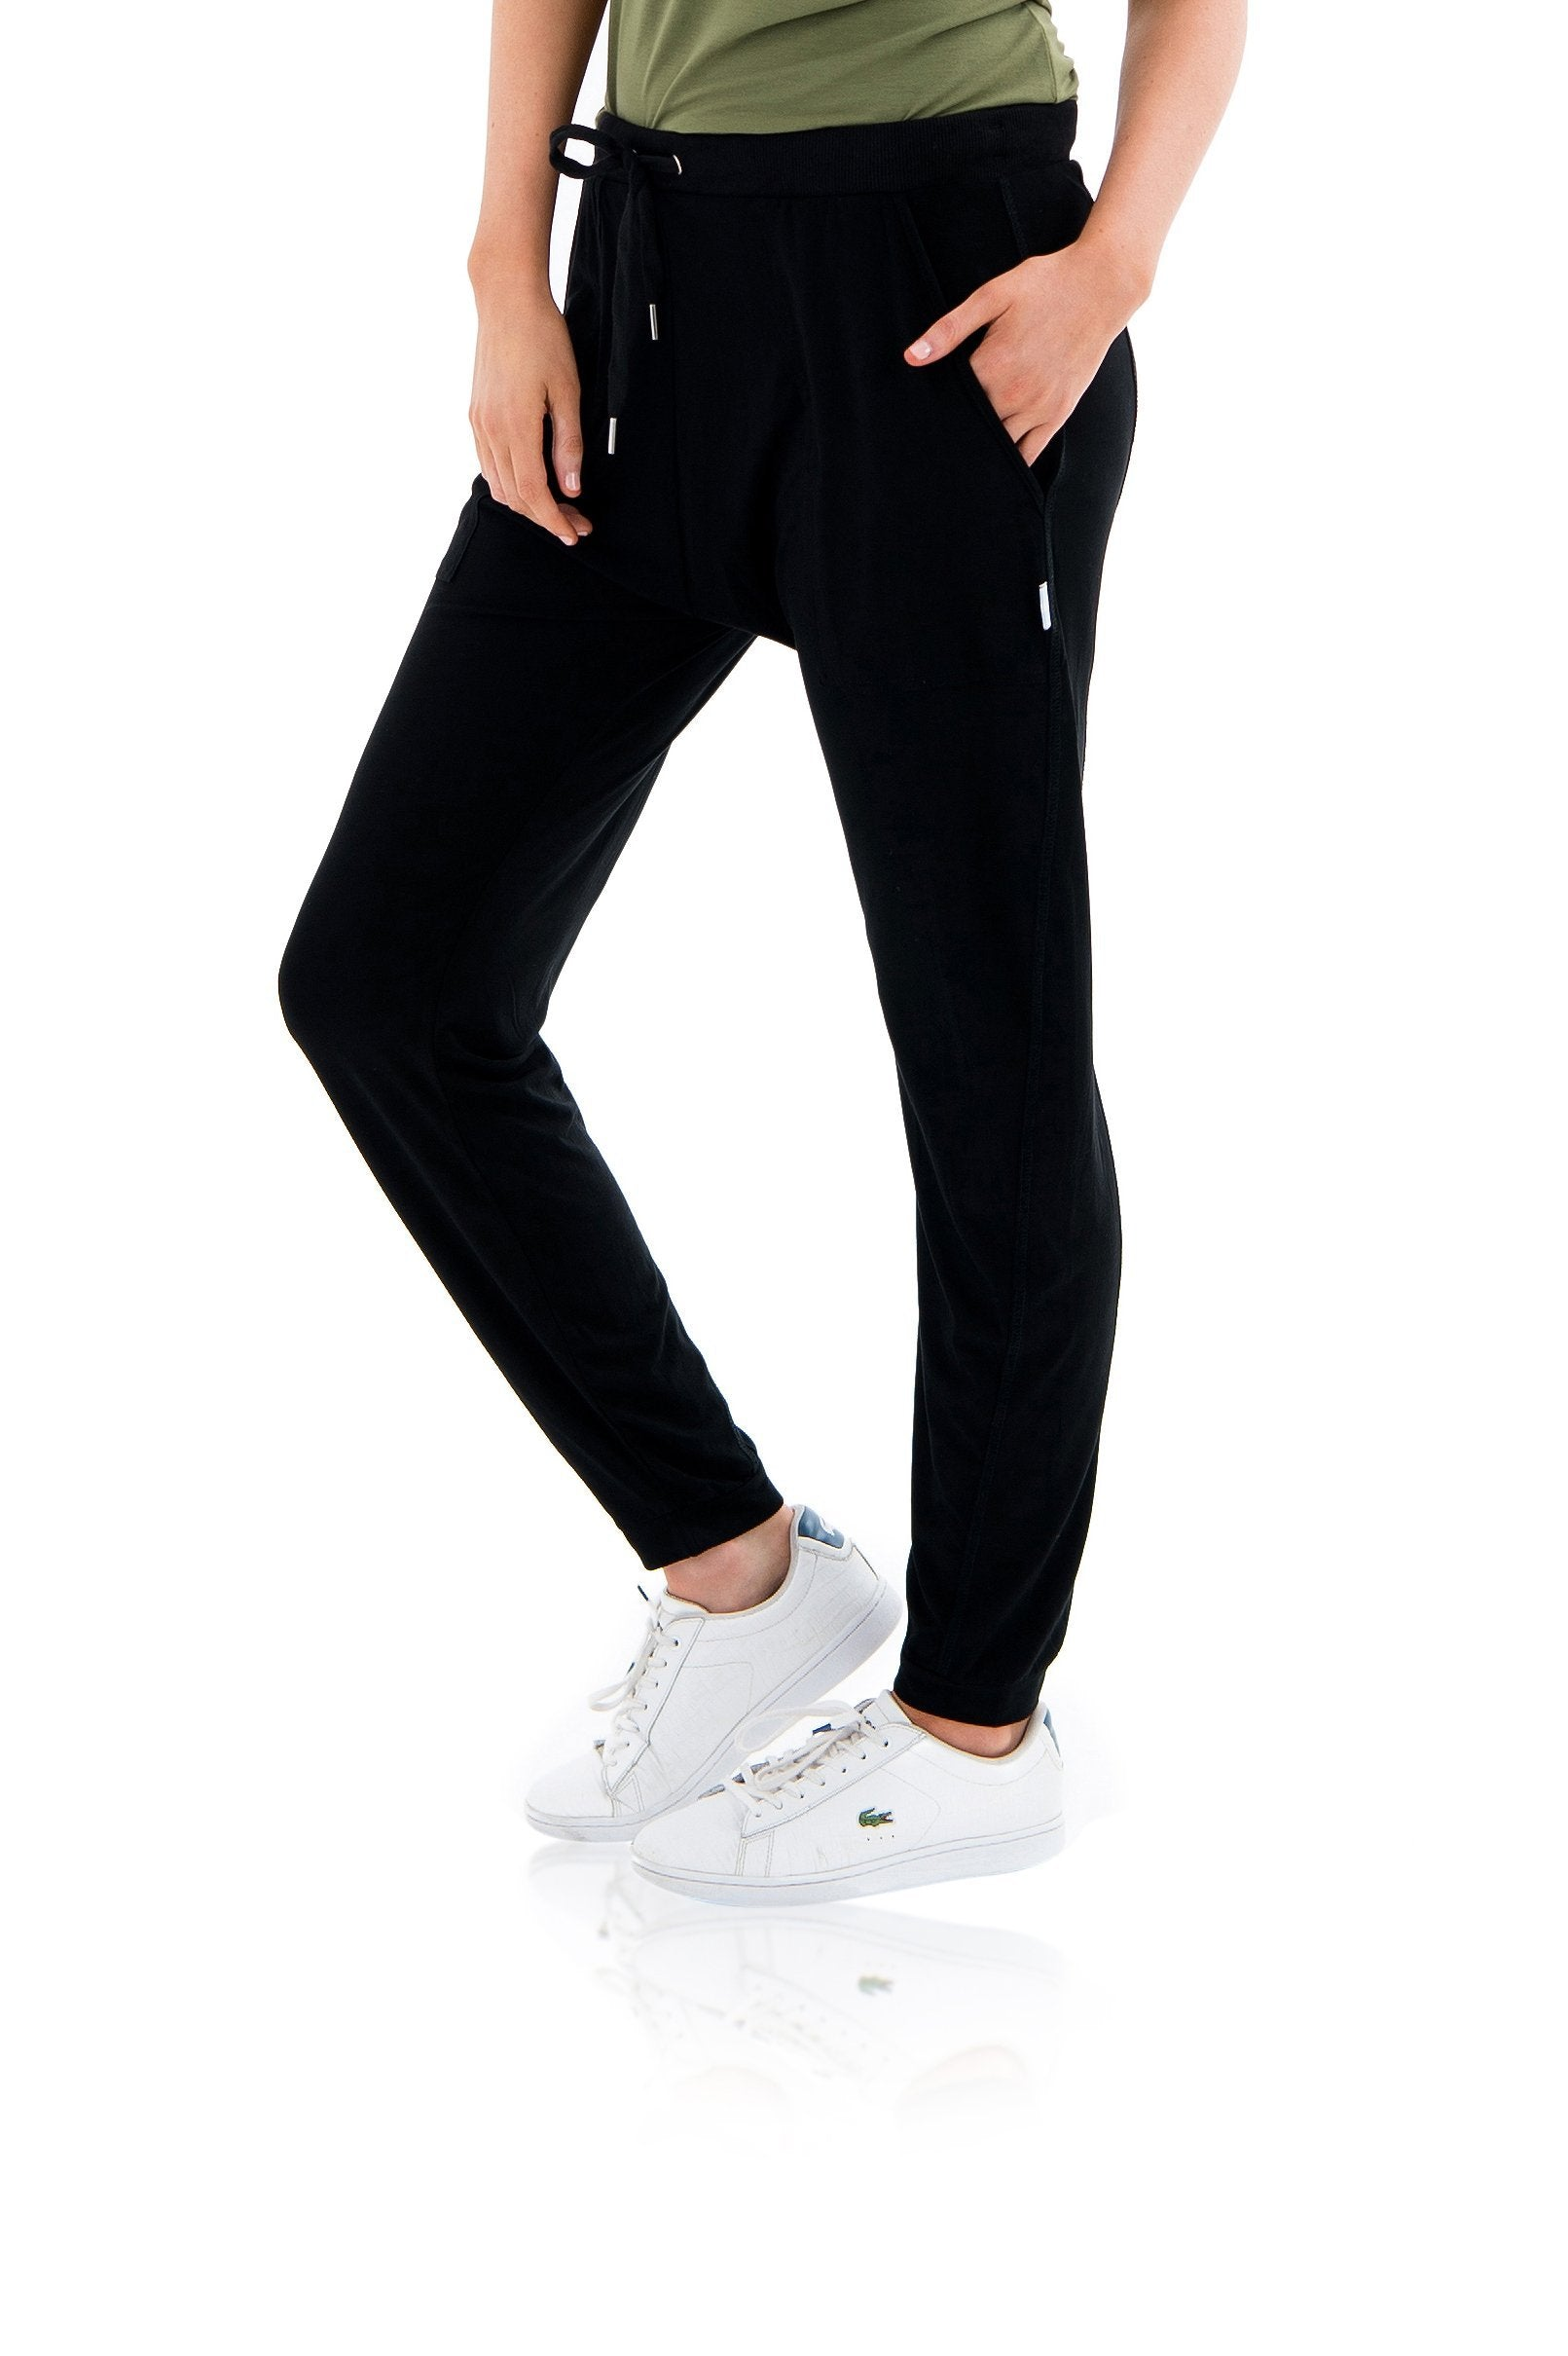 WILSON SLOUCH PANT - BLACK